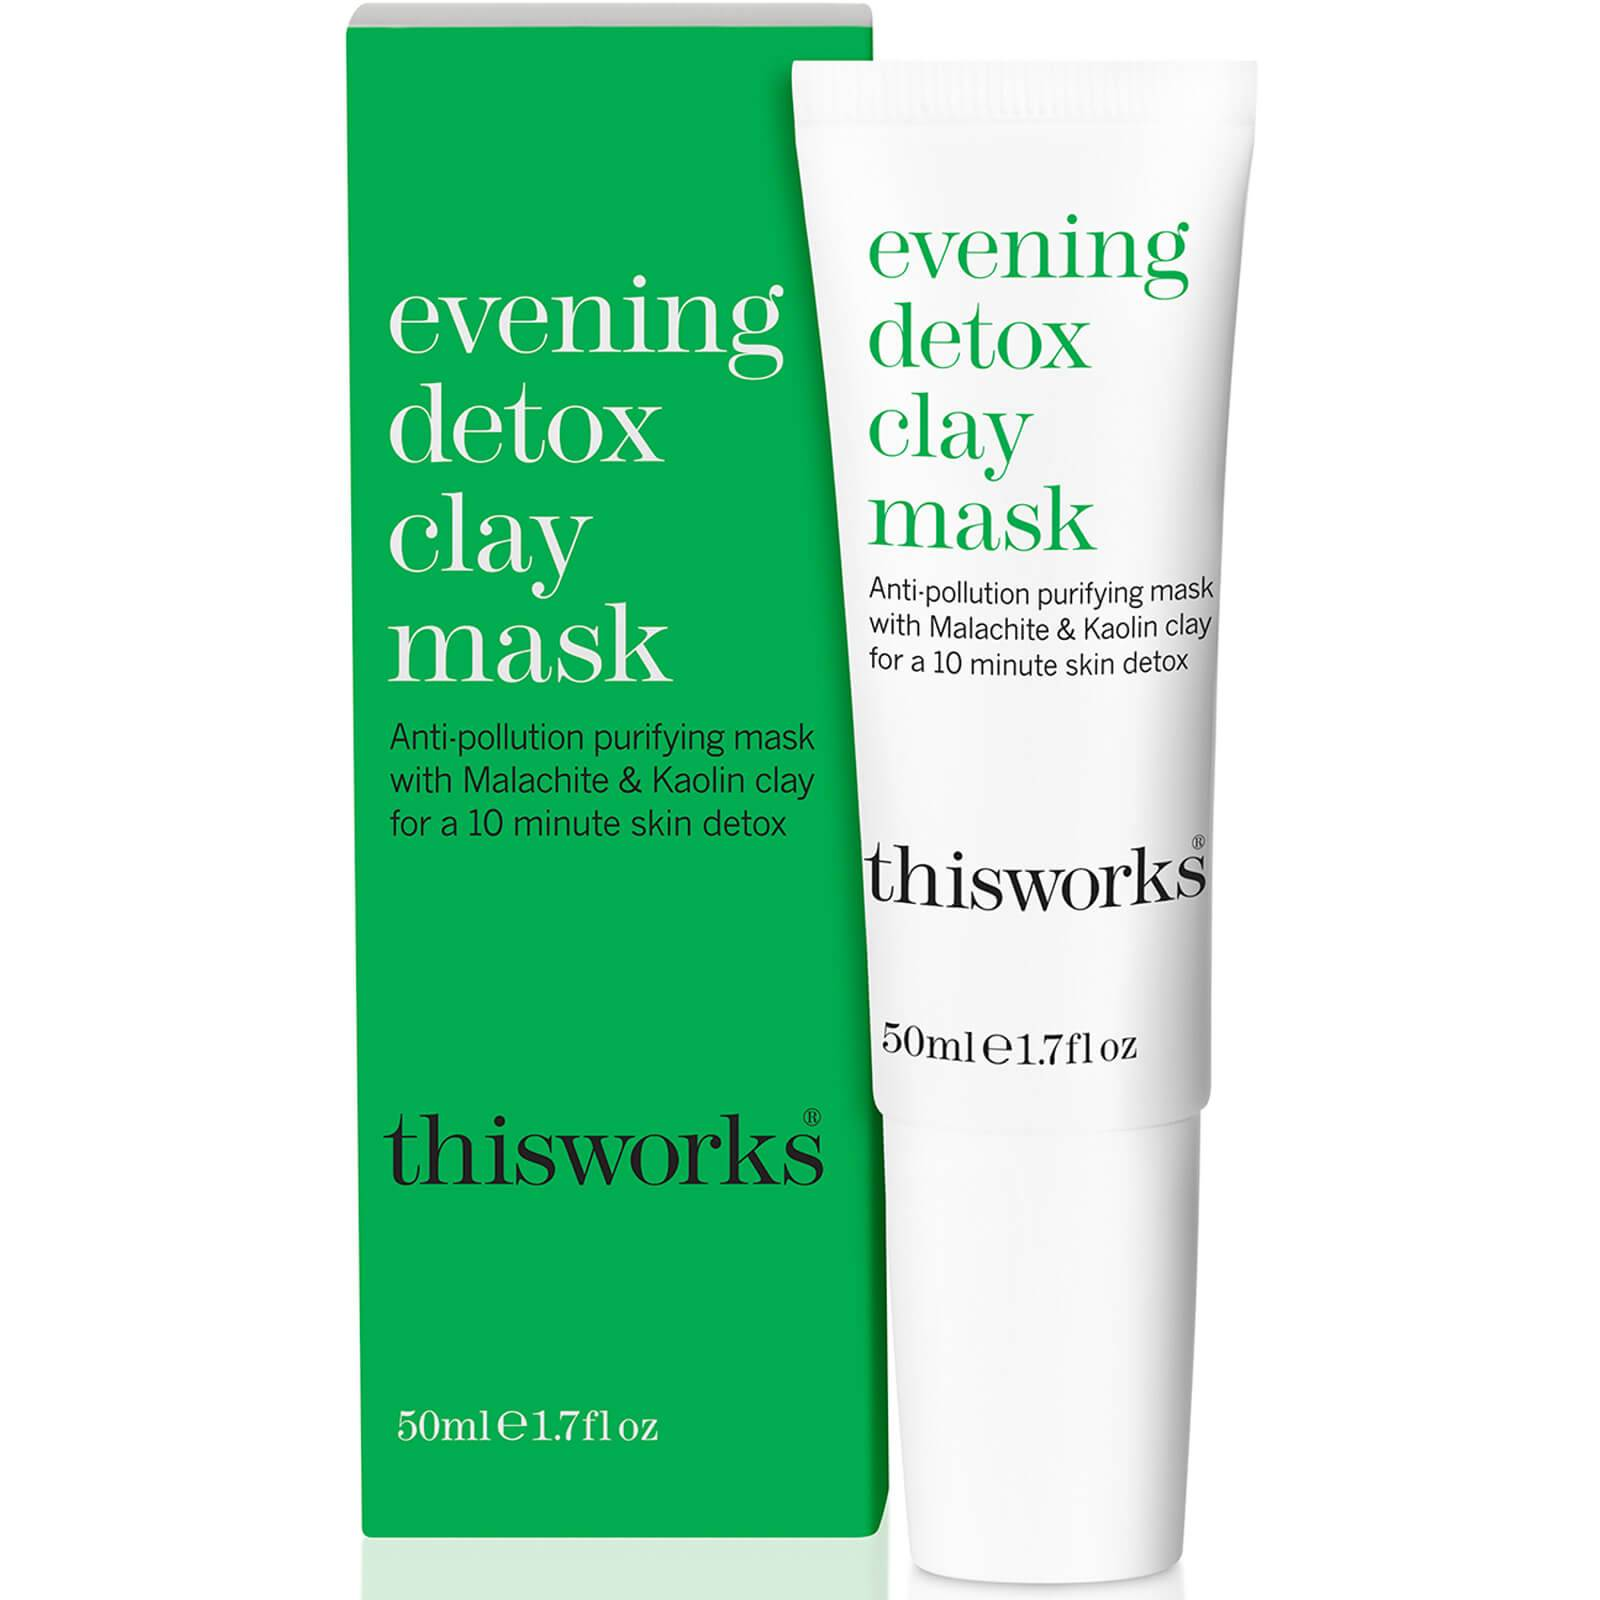 this works Masque Détoxifiant à l'Argile pour le Soir Evening Detox Clay Mask this works 50 ml